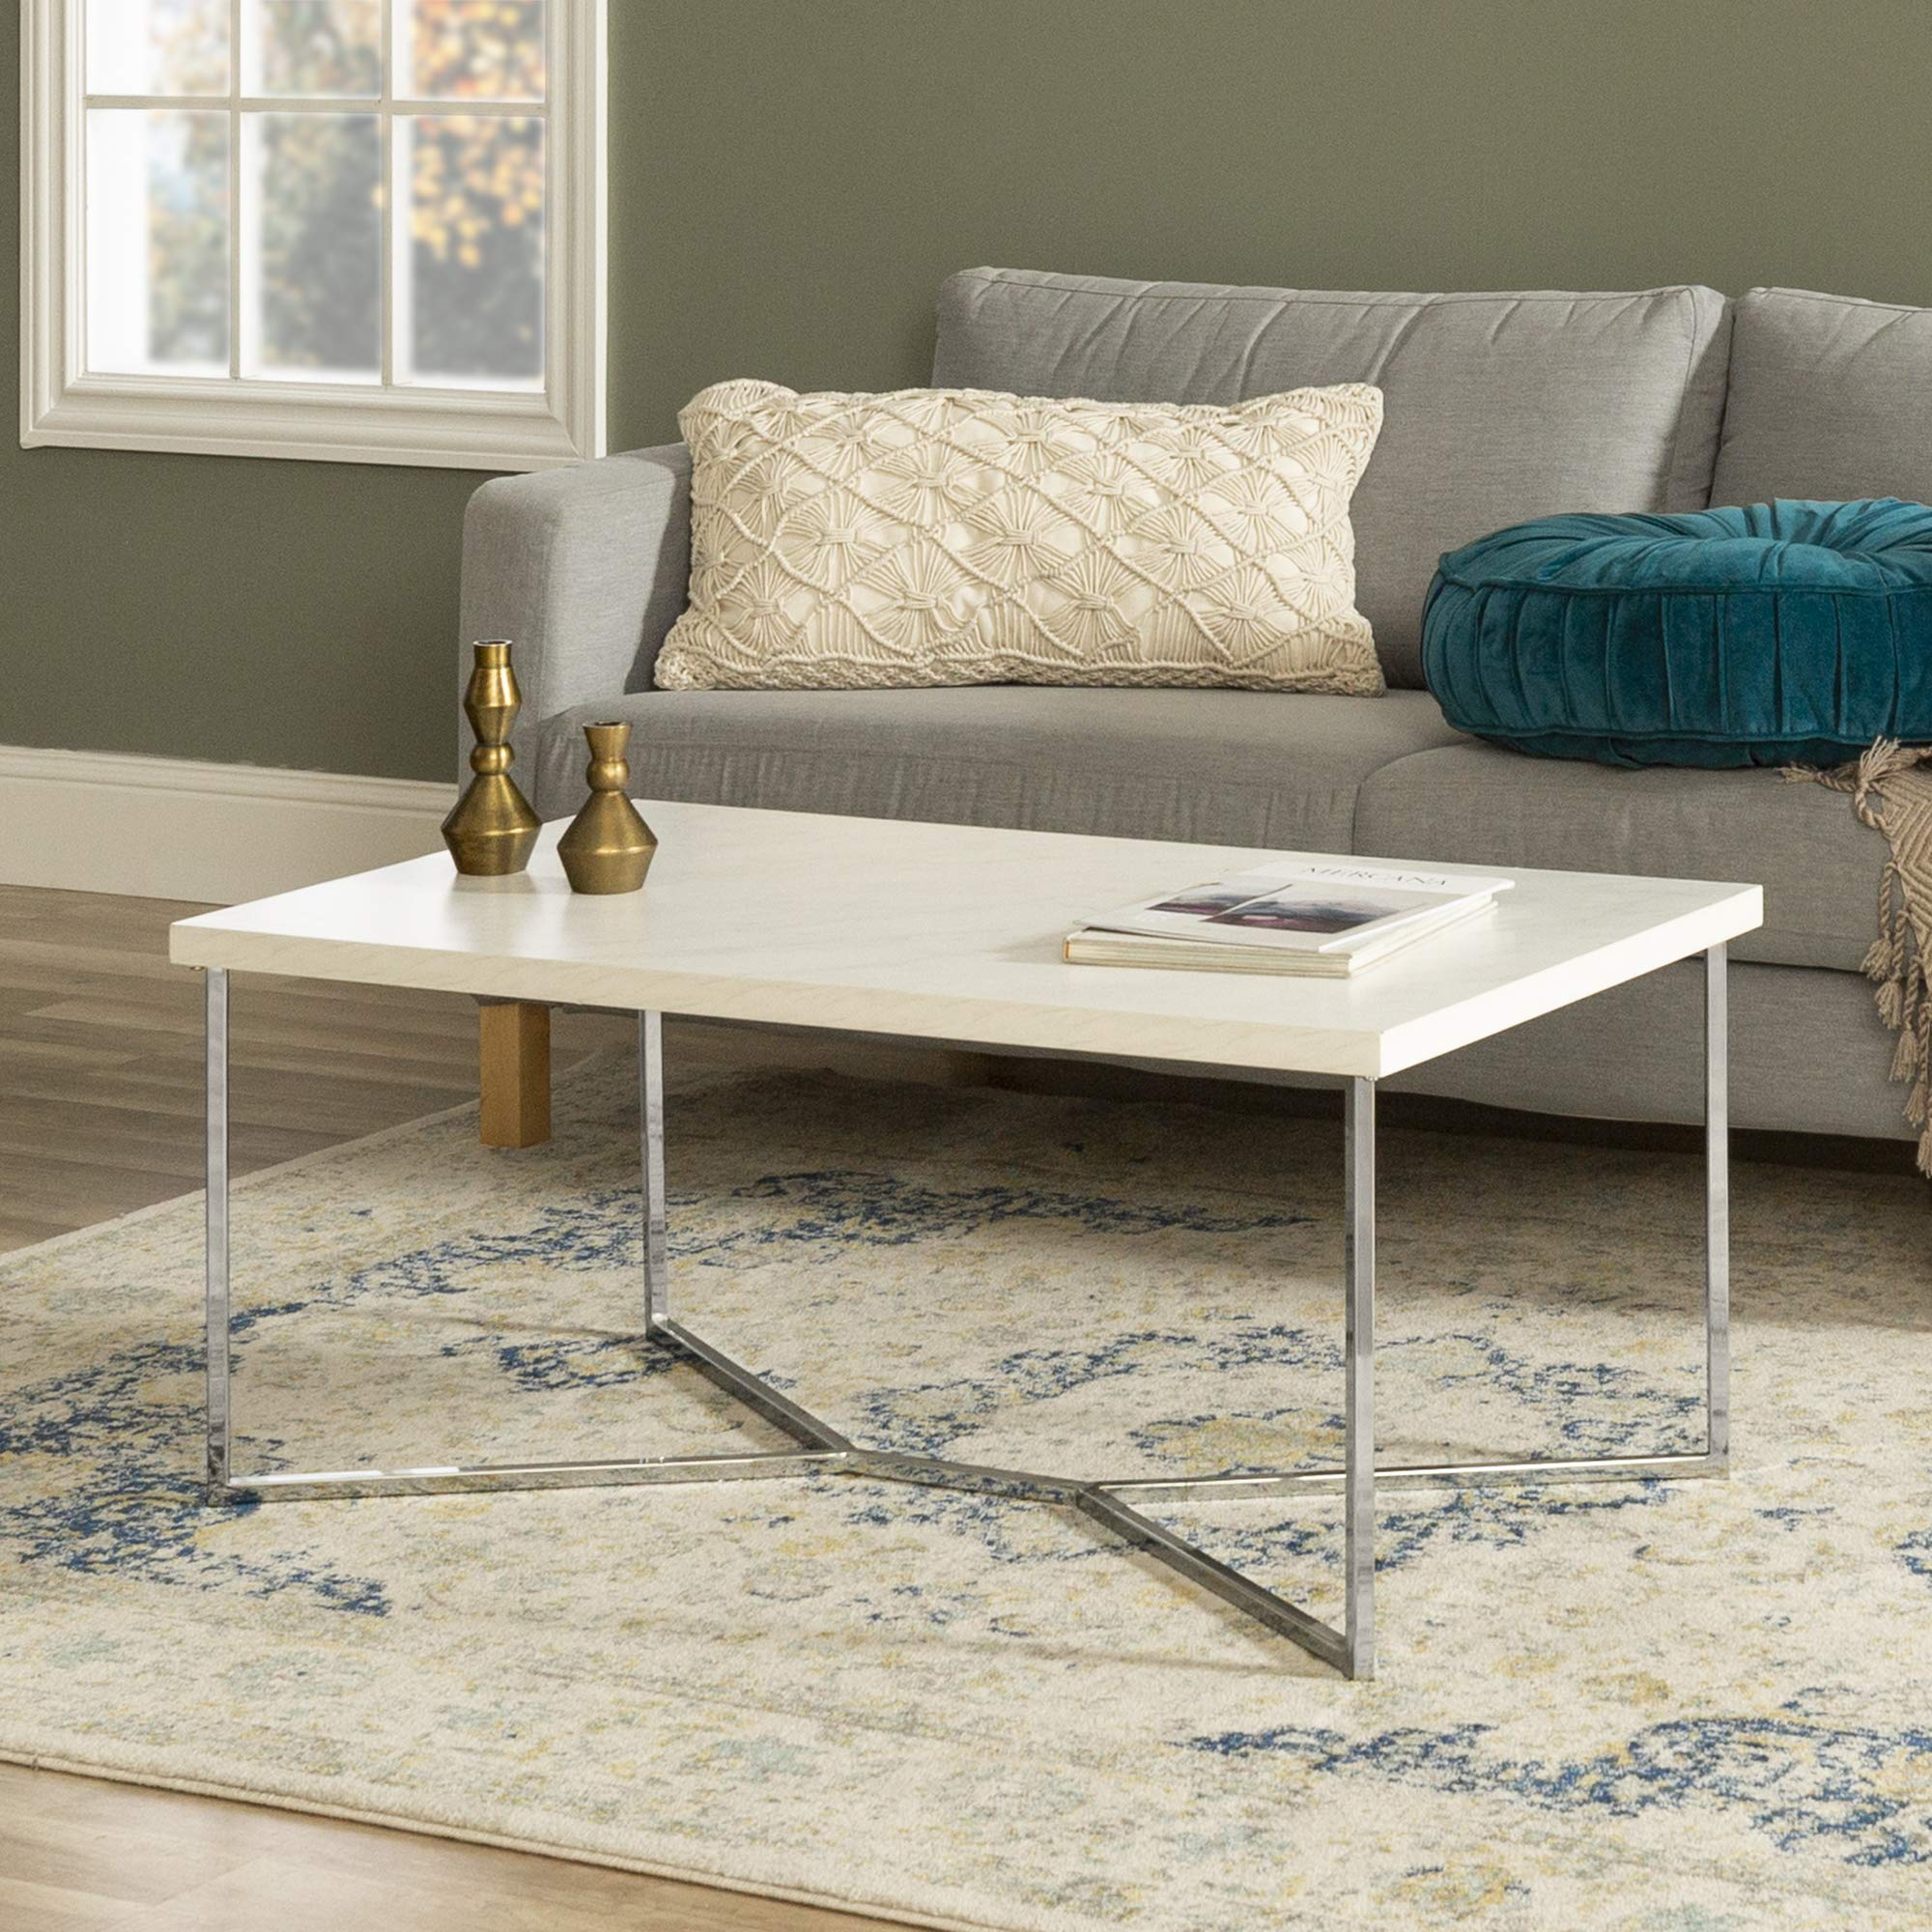 WE Furniture Mid Century Modern Gold Rectangle Coffee Table, 42 Inch, White Marble, Silver by WE Furniture